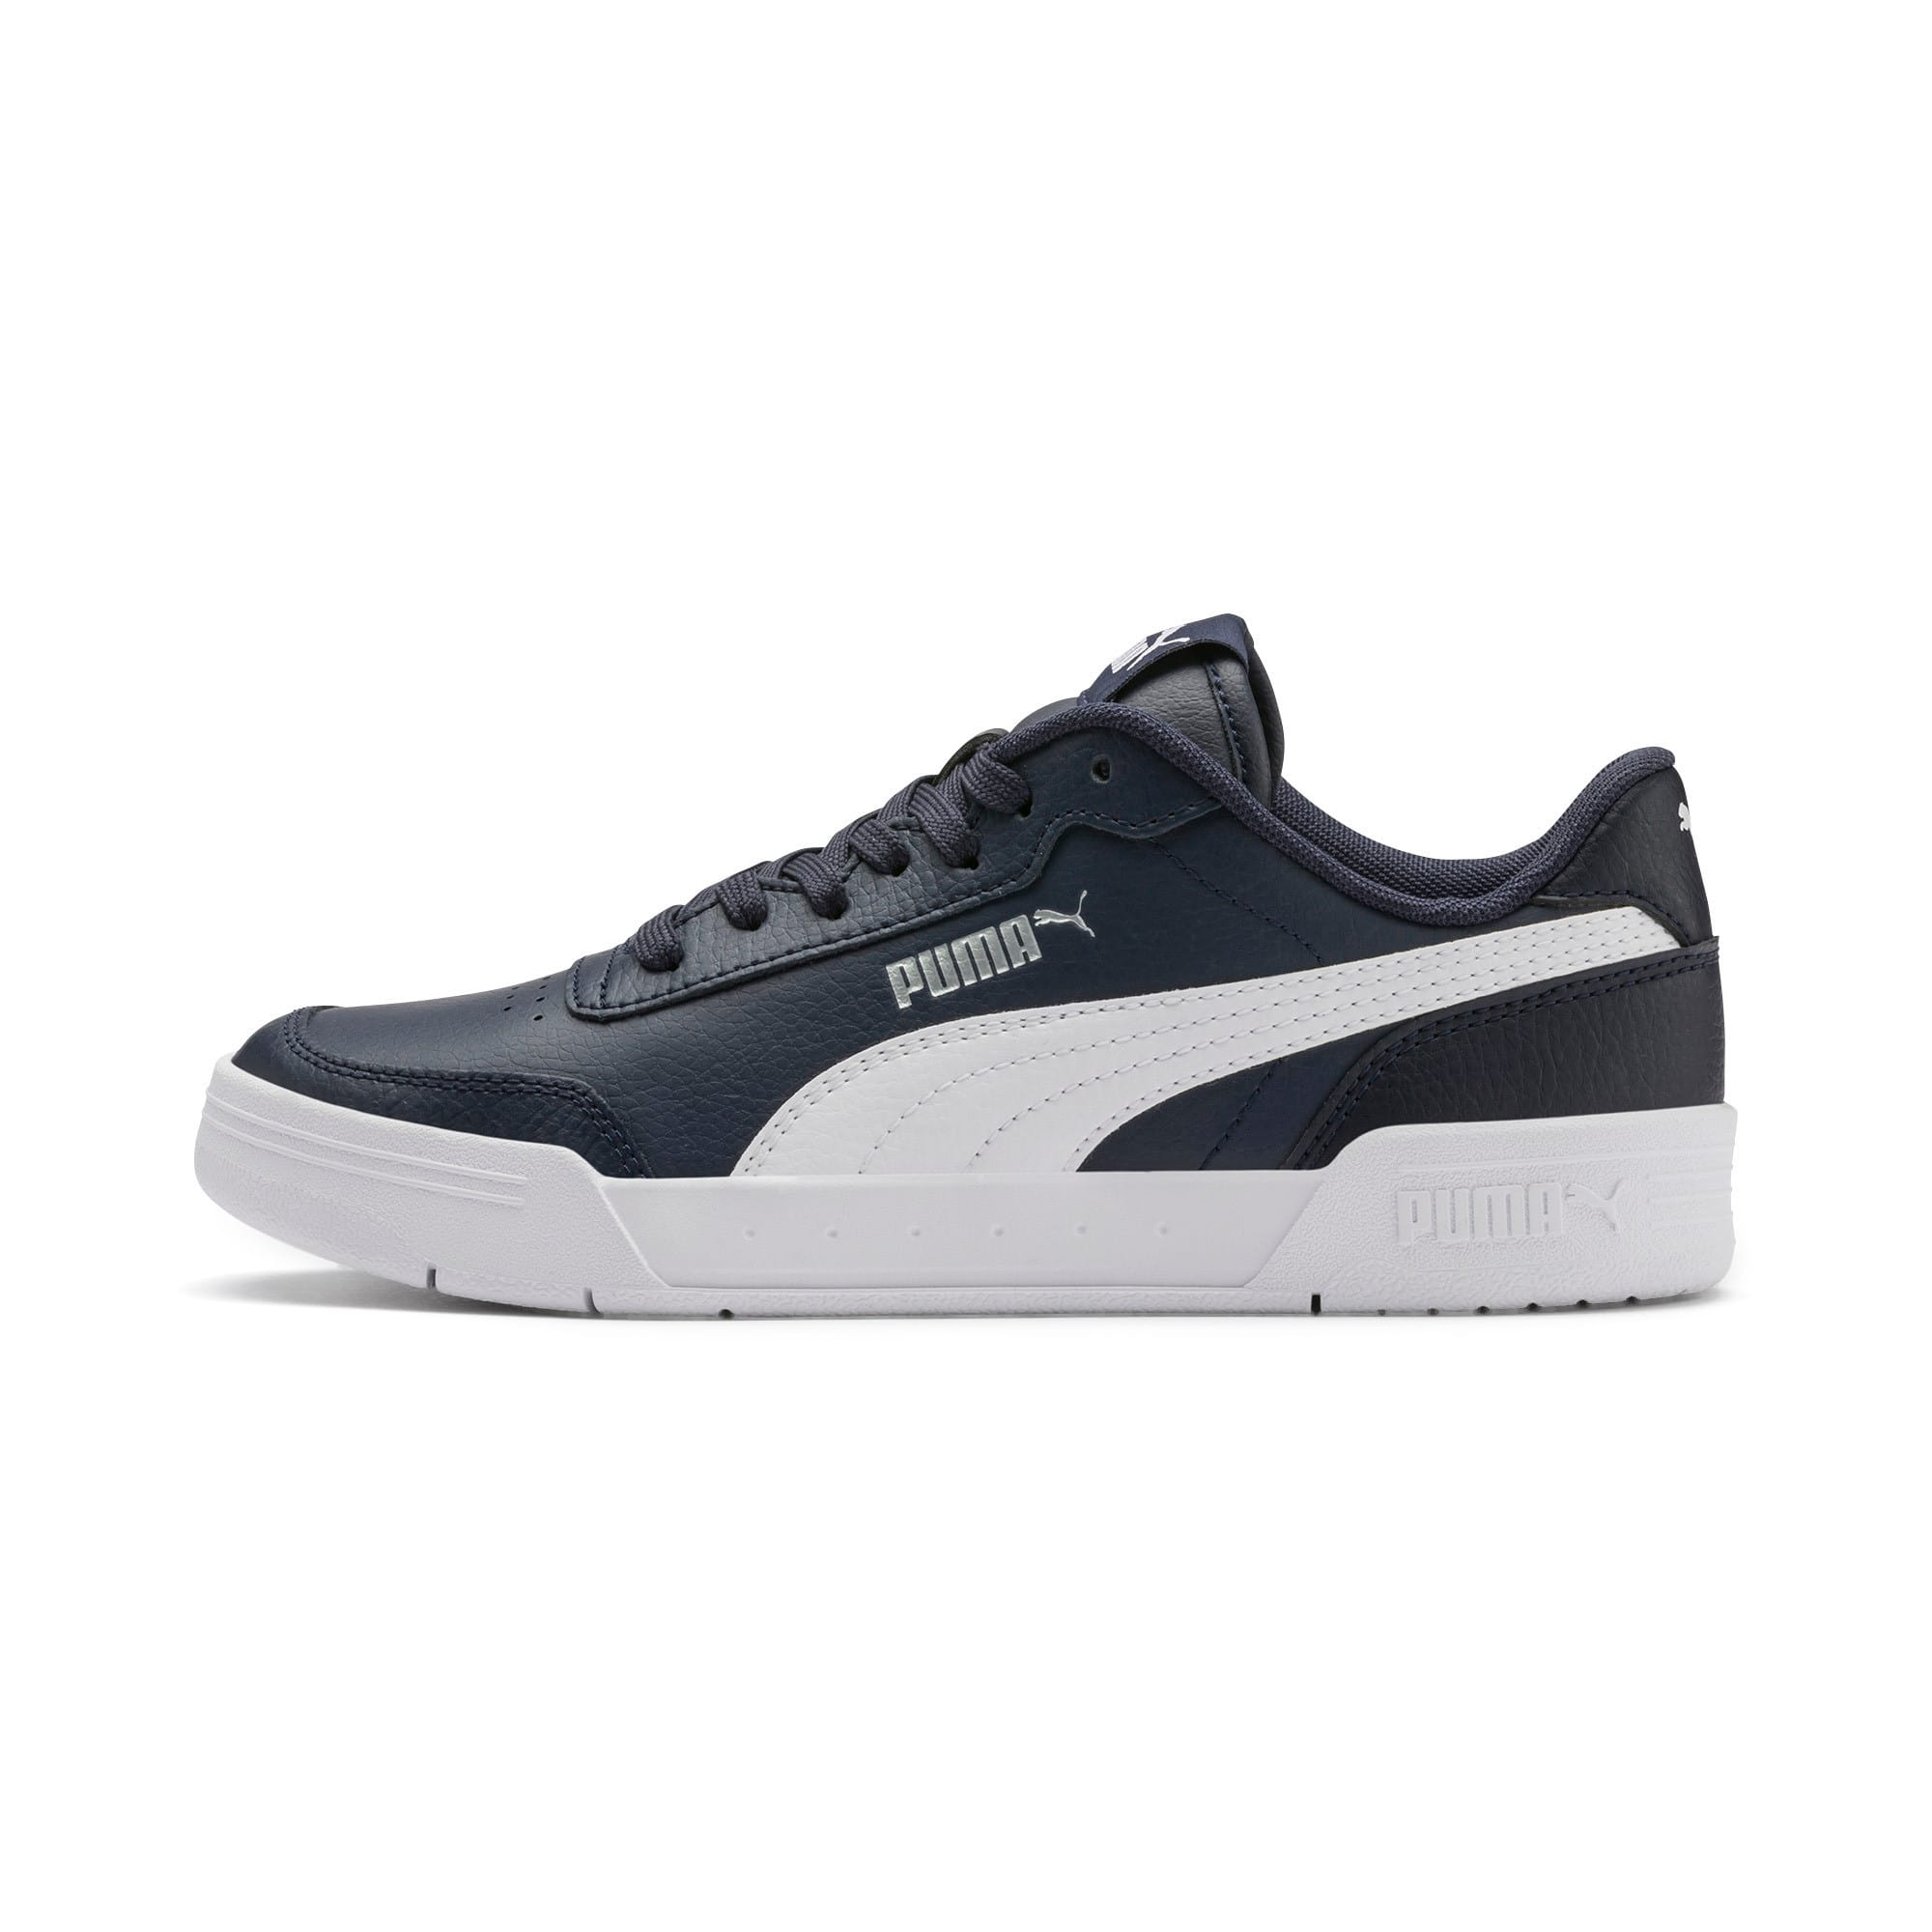 Thumbnail 1 of Caracal Youth Trainers, Peacoat-P. White-Puma Silver, medium-IND